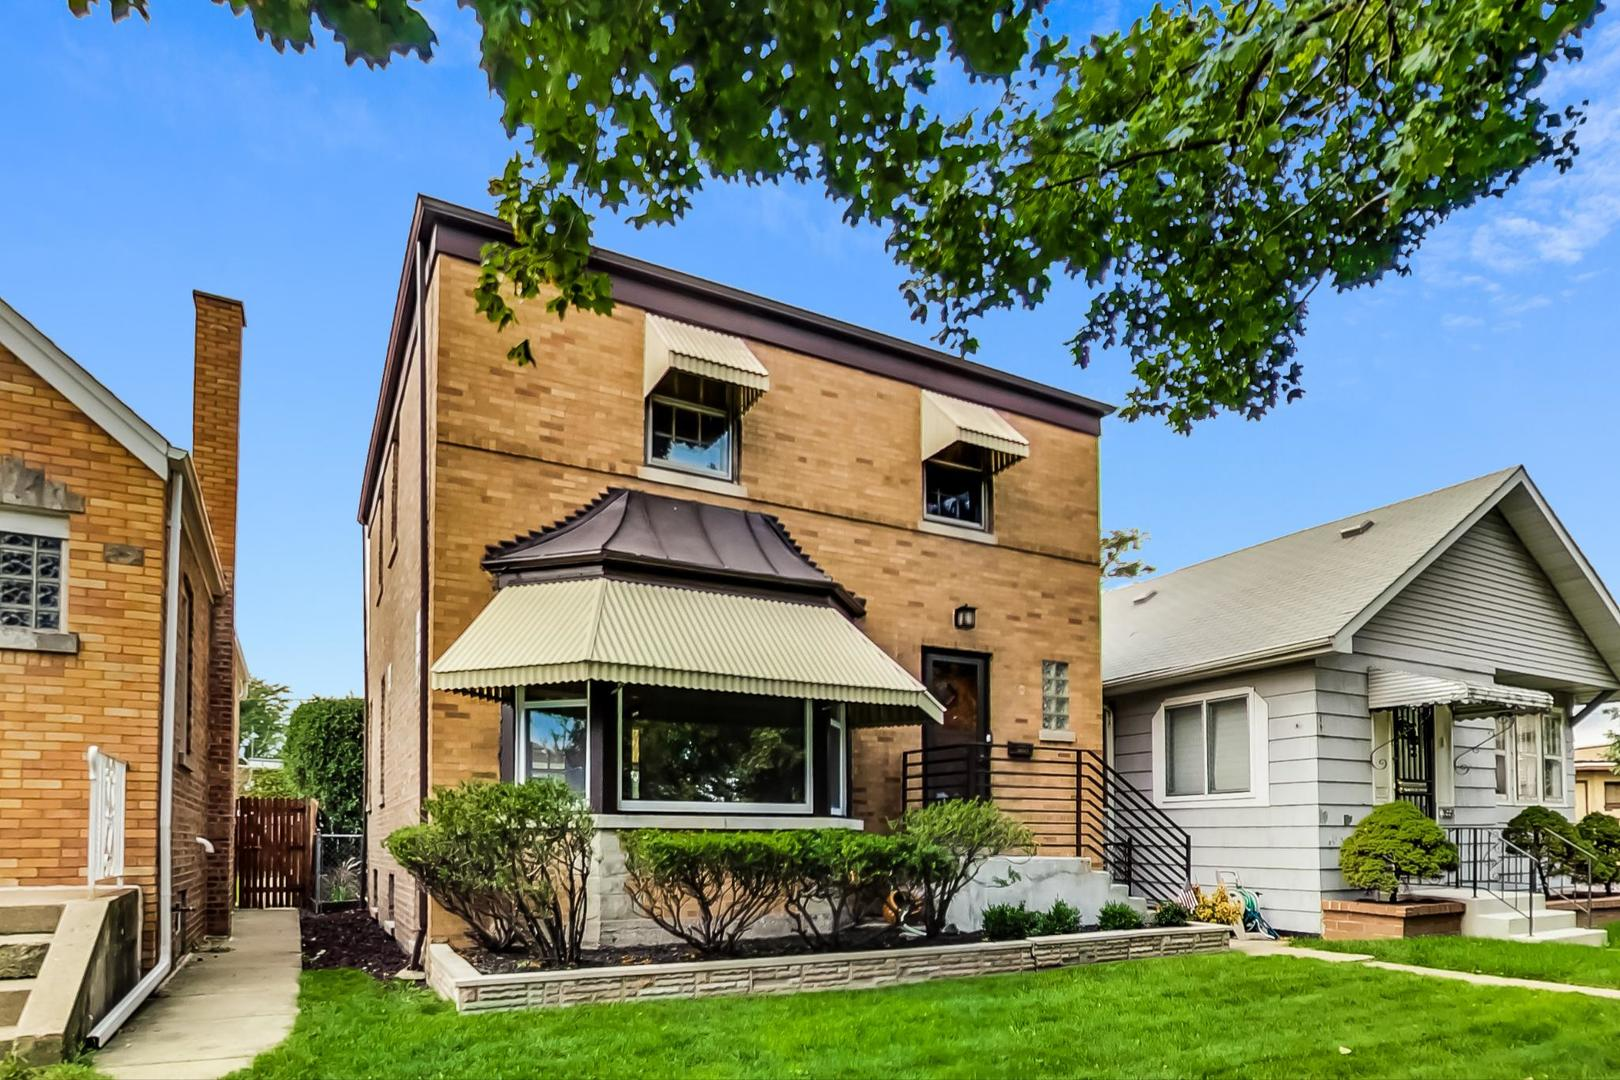 3554 N Rutherford Exterior Photo